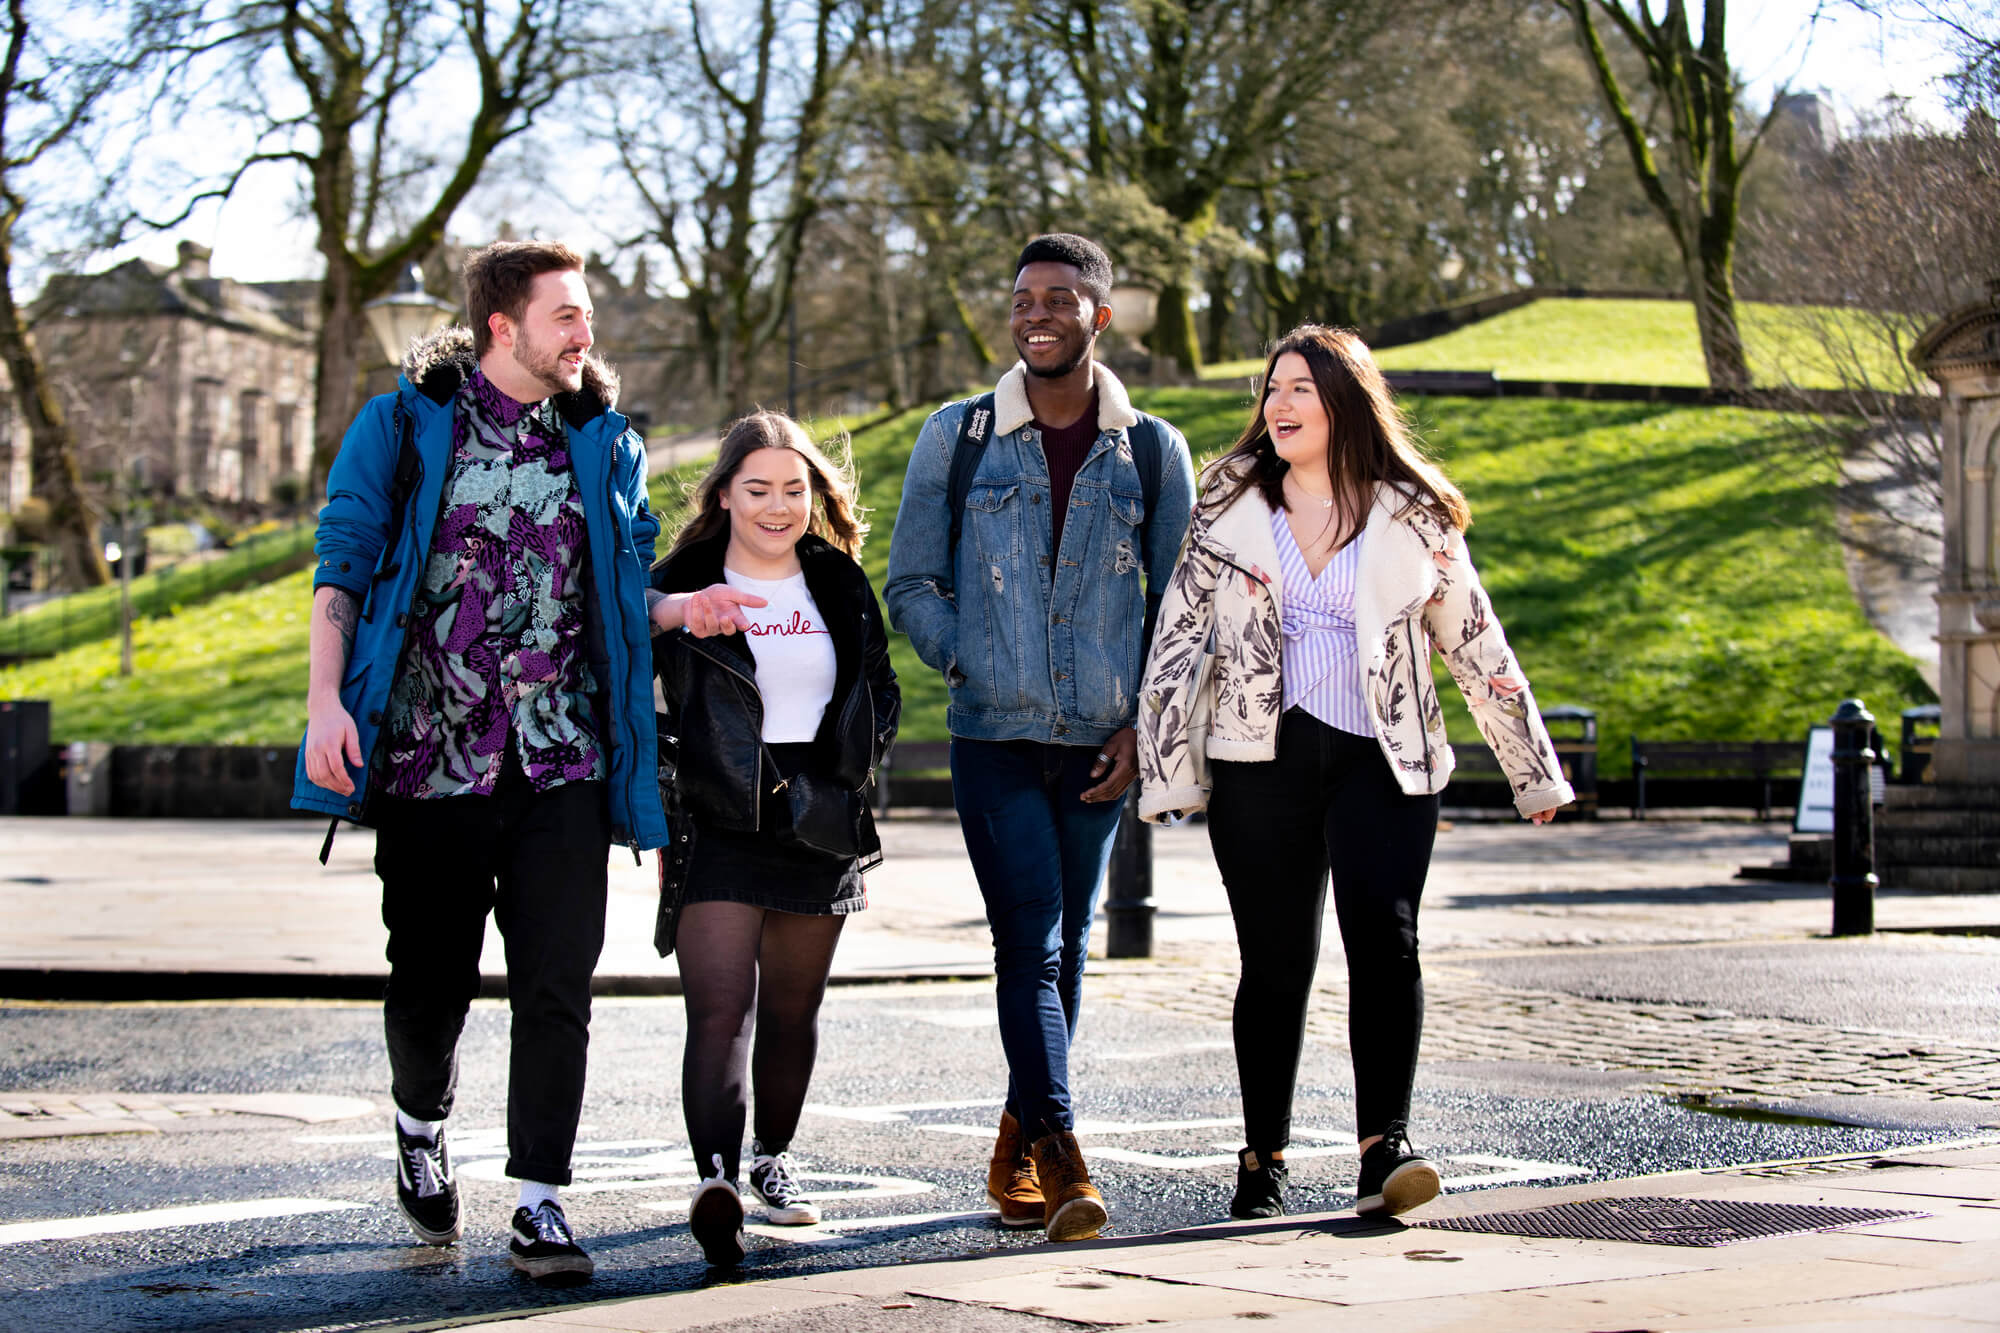 Four University of Derby students walk through the streets of Buxton town on a bright day.  Tow girls and two boys, dressed in casual clothes of denim, skirts, tshirts, boots and trainers.  Green grass and trees appear in the near distance showing Spring has arrived.